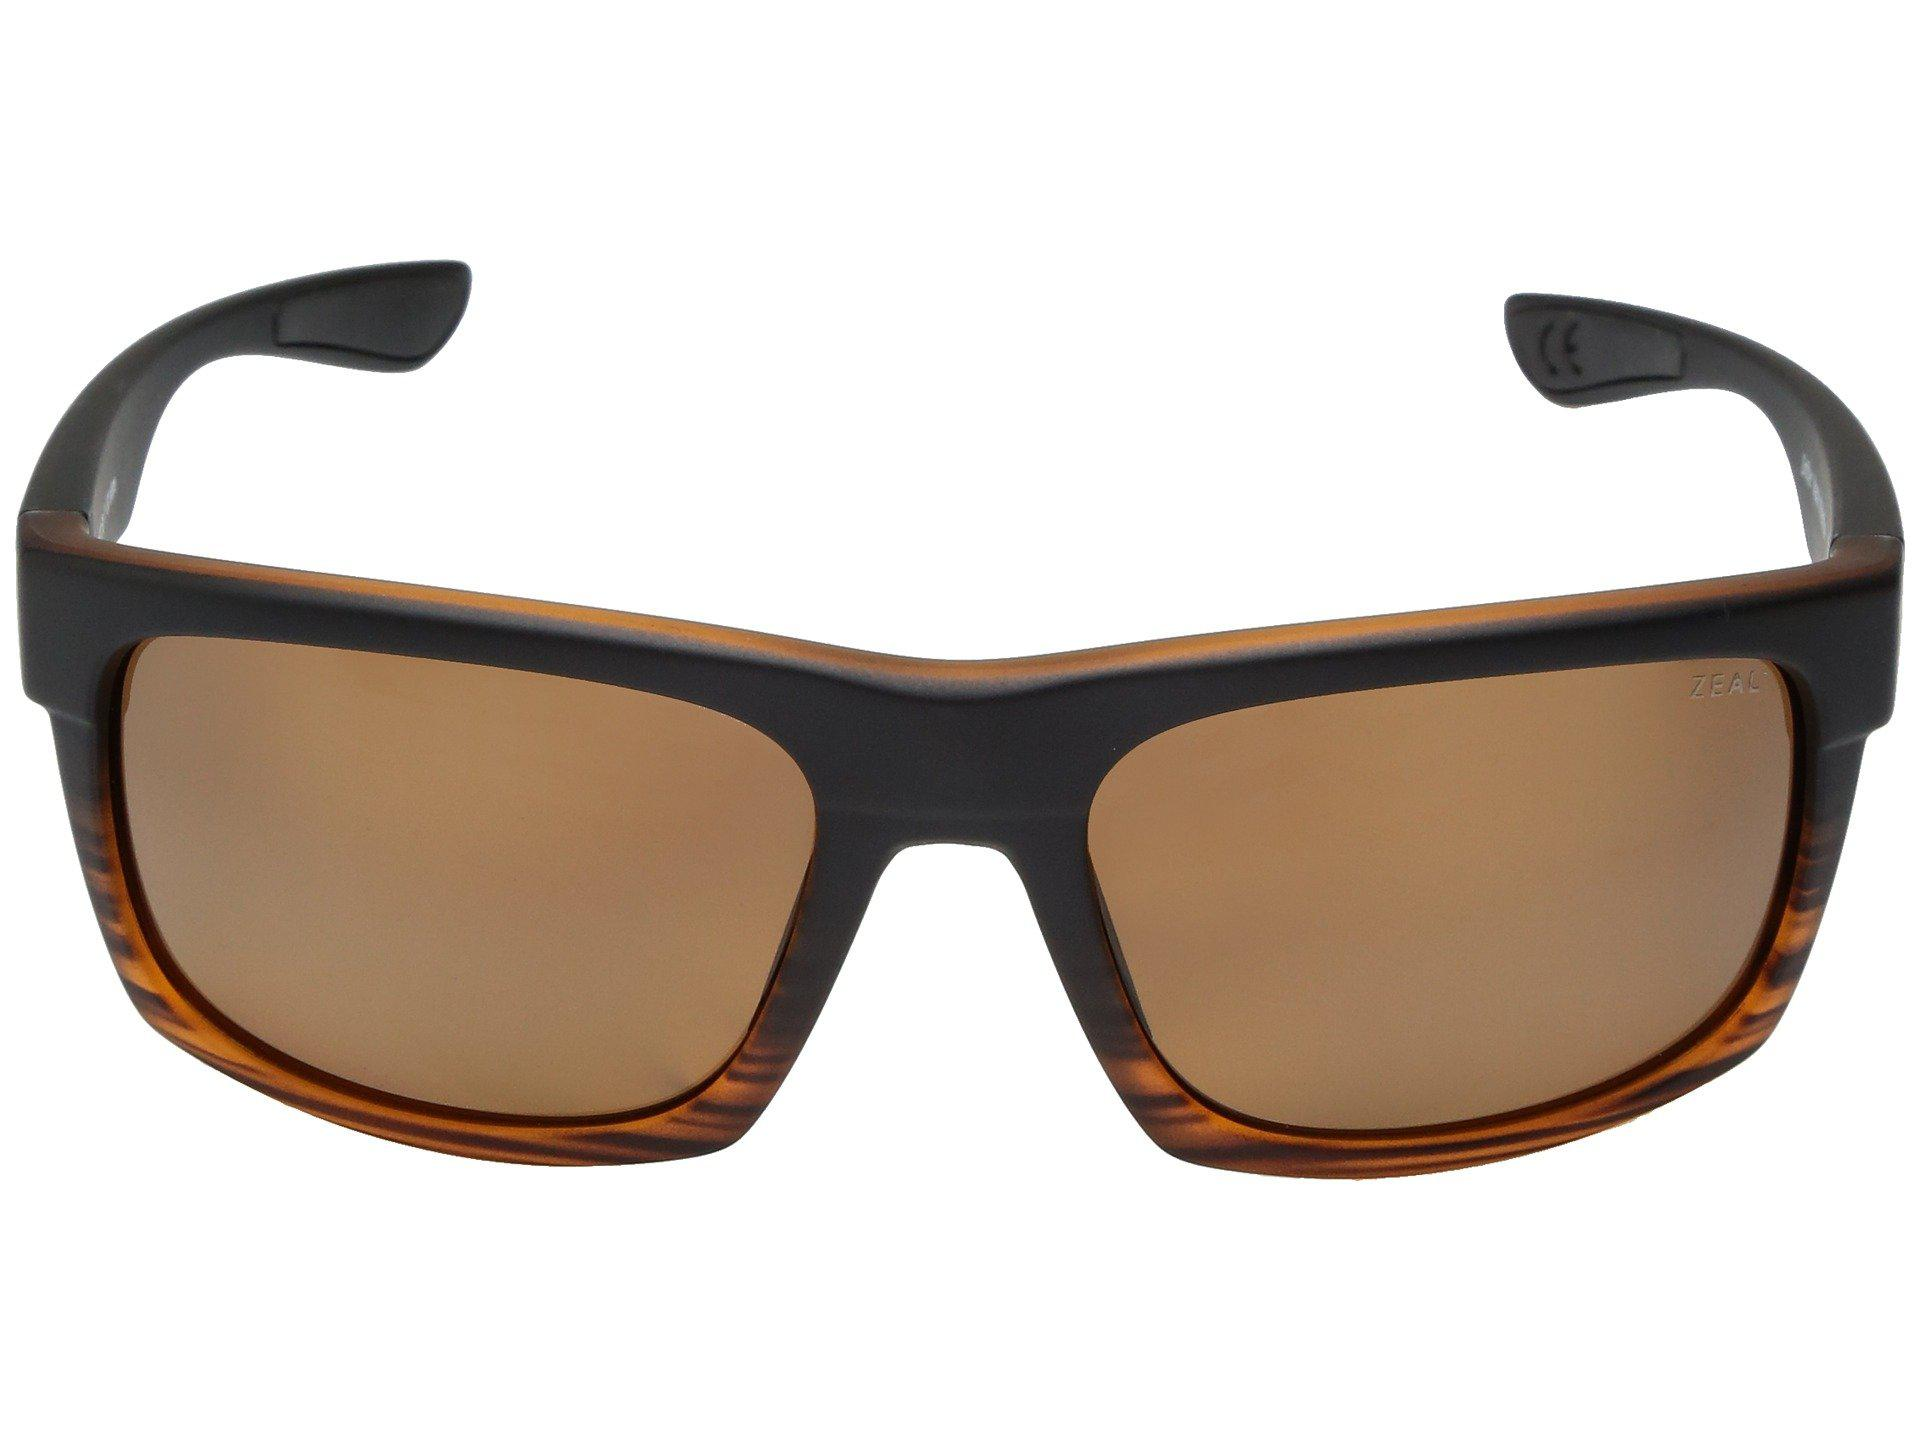 e32c75dfa81 Zeal Optics - Multicolor Drifter (torched Woodgrain W  Polarized Copper Lens)  Sport Sunglasses. View fullscreen